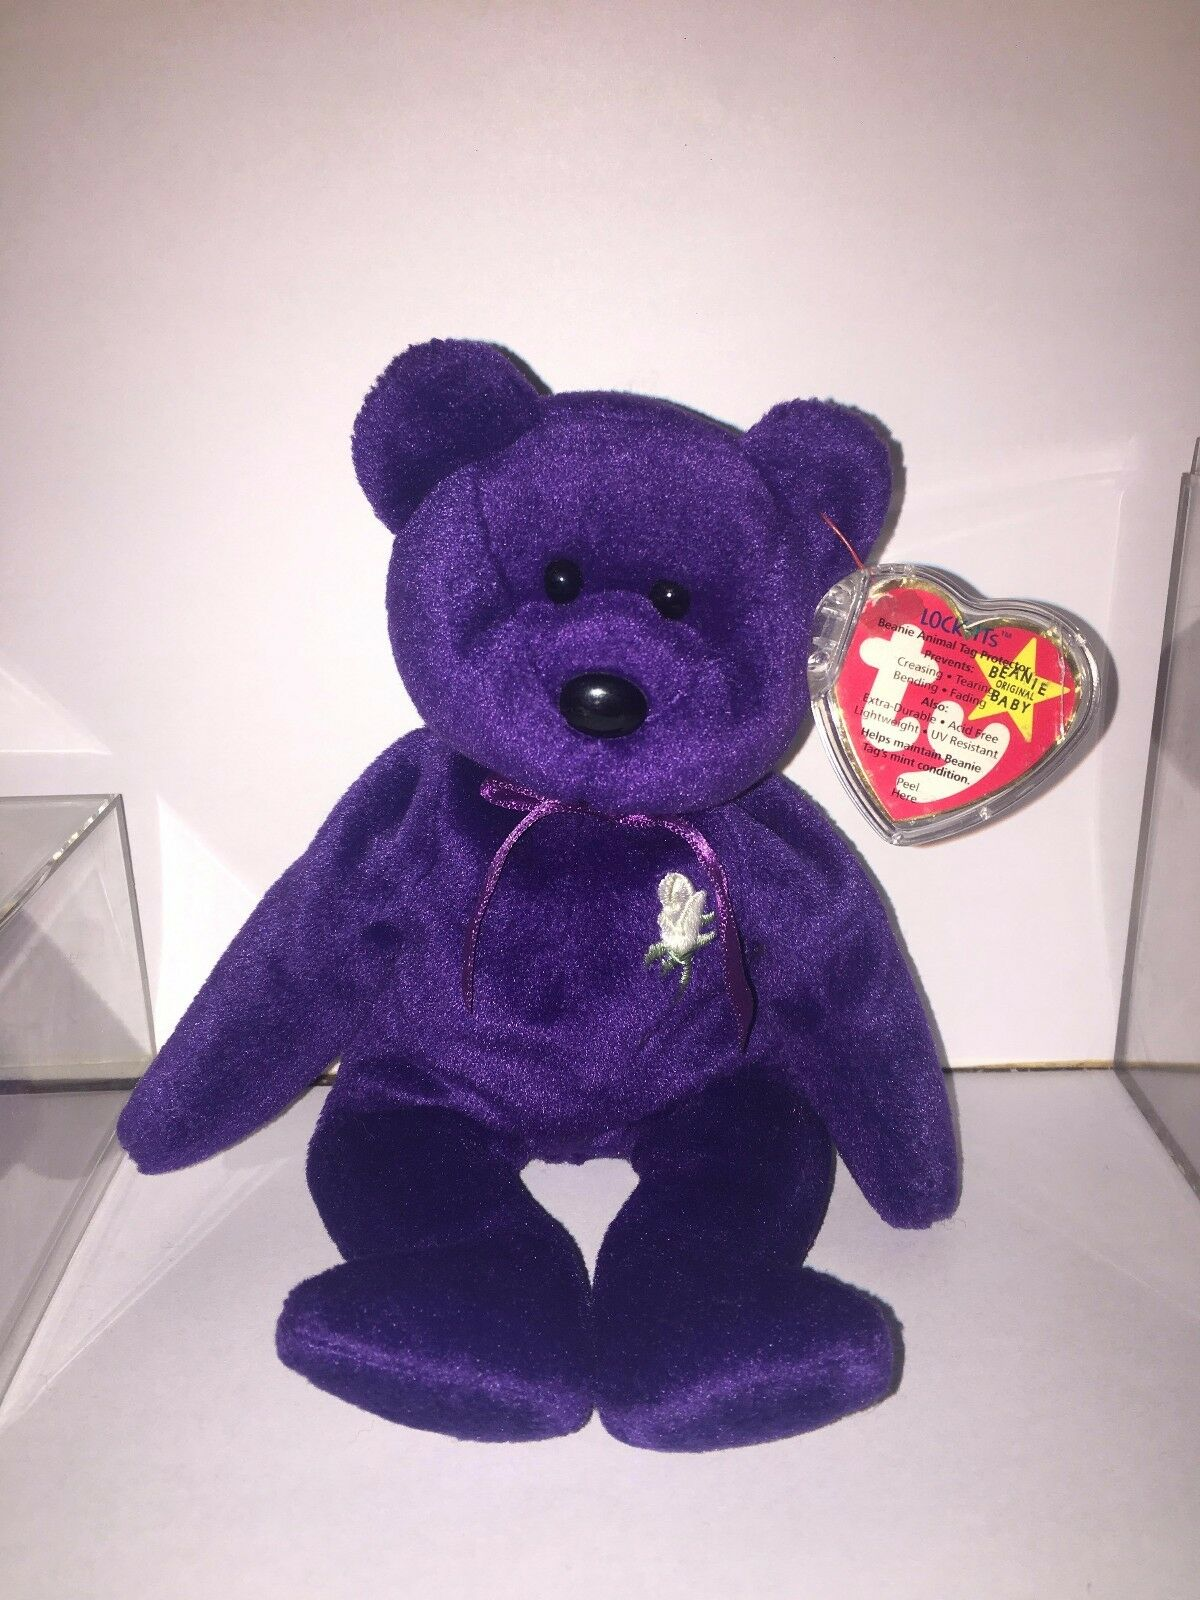 1997 Retired Princess Diana Mint Condition Beanie Baby with original tag